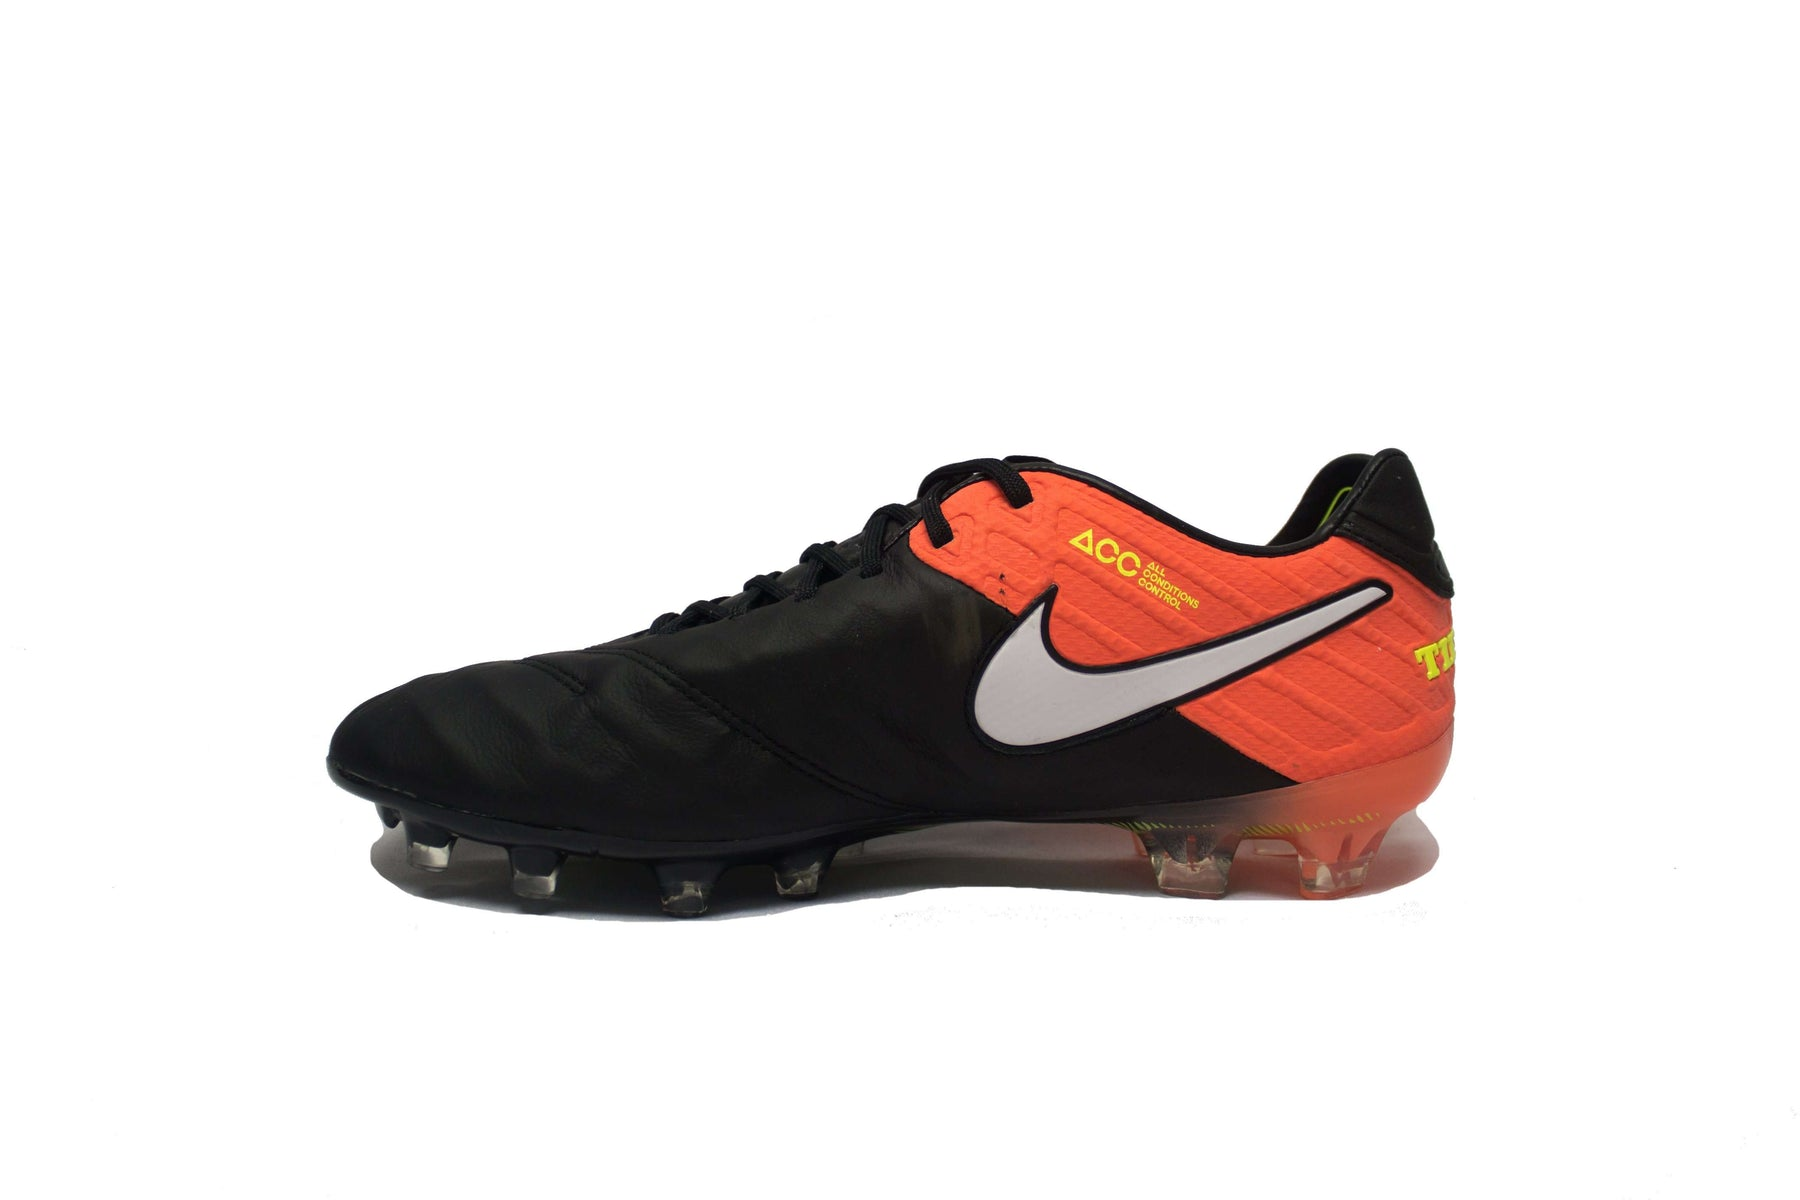 fa6044352df ... Nike Men s Tiempo Legent VI FG Soccer Cleats - League Outfitters ...